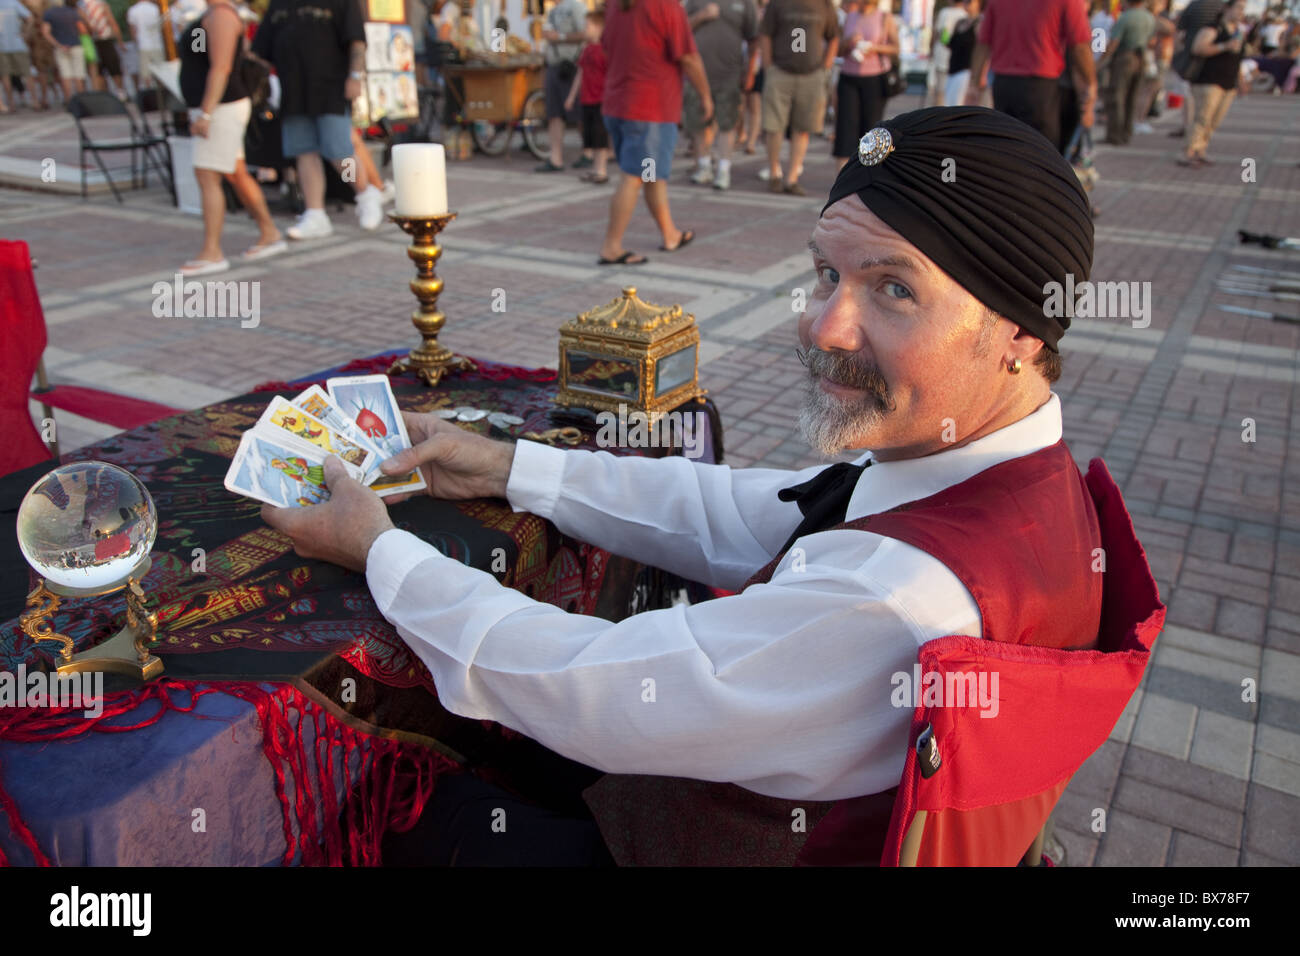 Psychic reading cards with crystal ball in Mallory Square, Key West, Florida, United States of America, North America - Stock Image